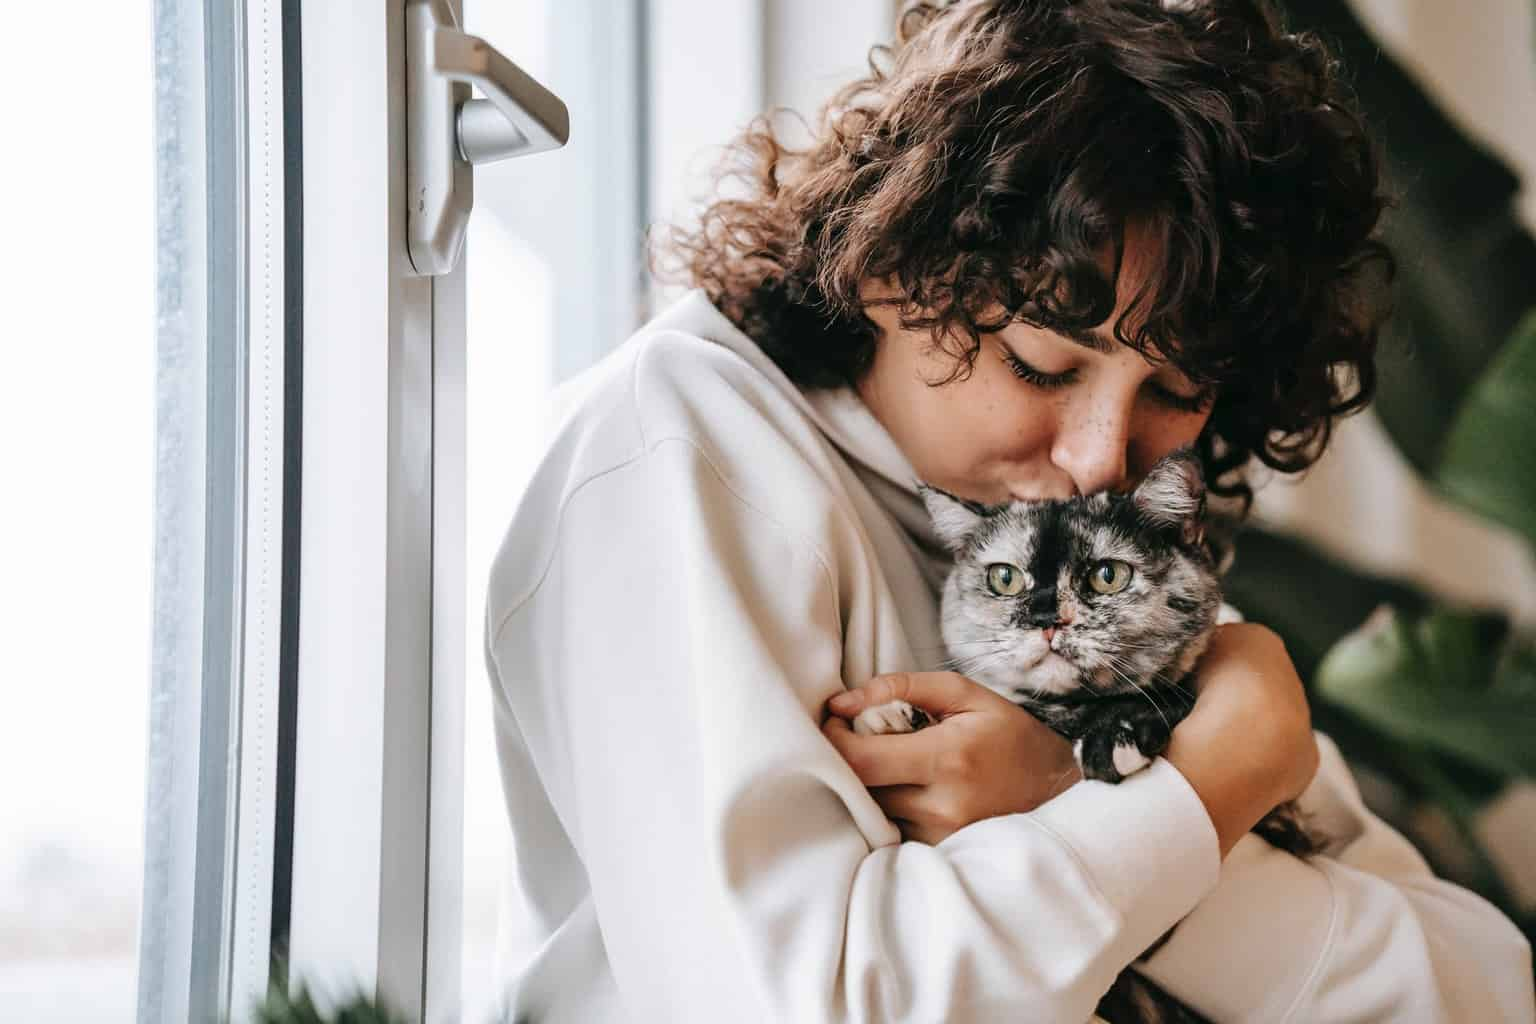 crop woman kissing charming cat near window at home